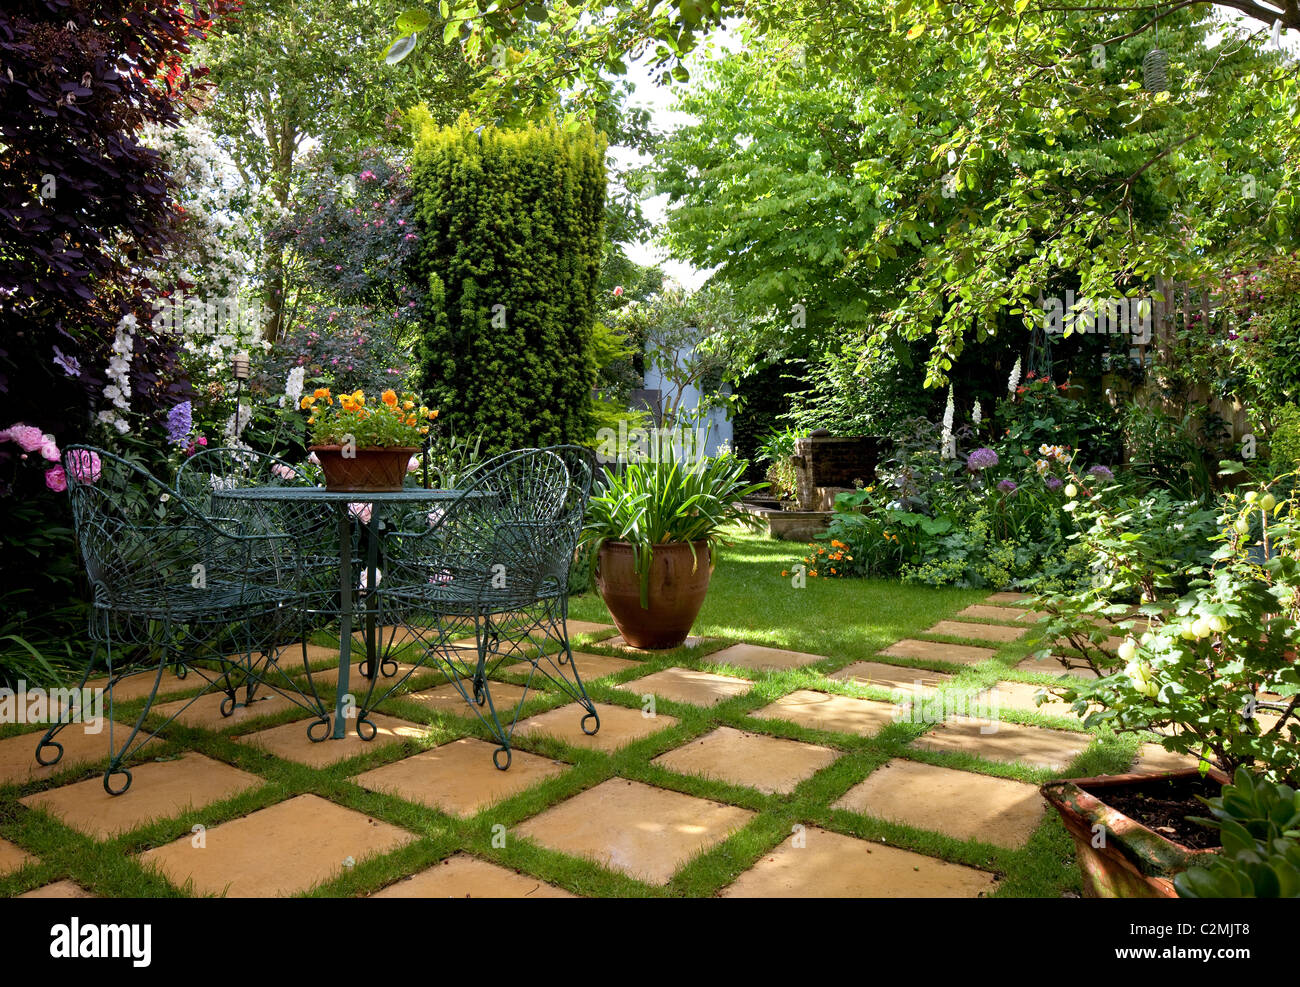 Suburban Garden. Wire garden furniture on checkerboard paving stone and grass amongst lush green planting including - Stock Image